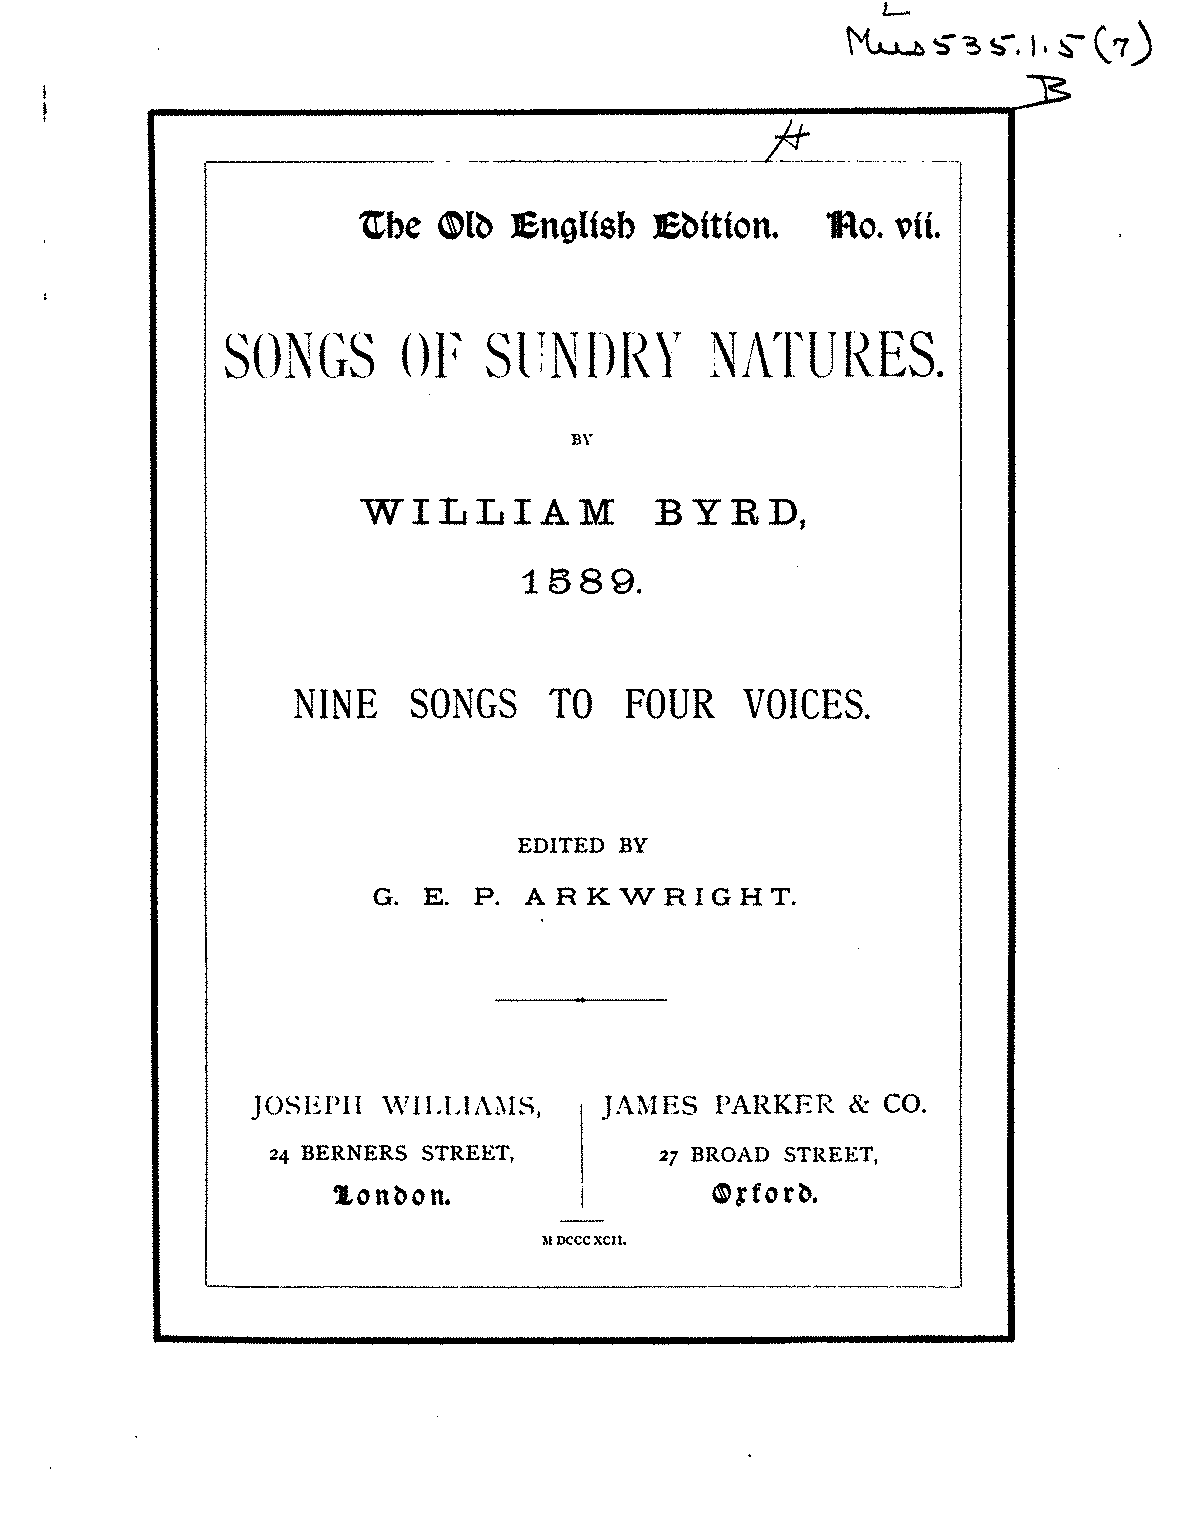 william byrd compositions